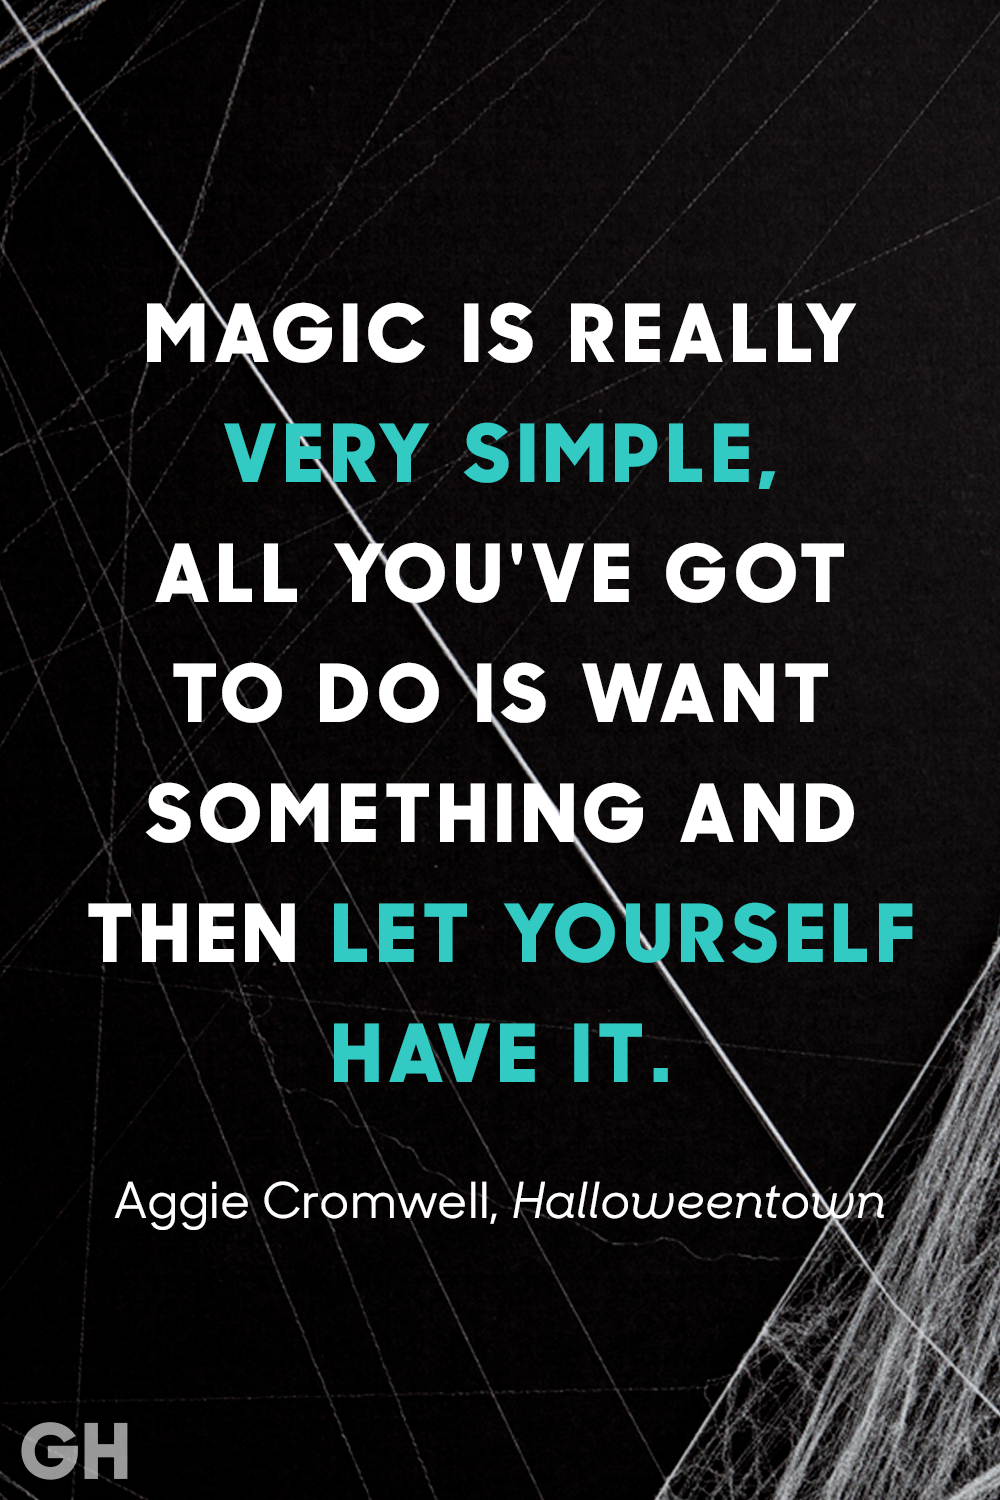 Beautiful Aggie Cromwell, Halloweentown Halloween Quotes